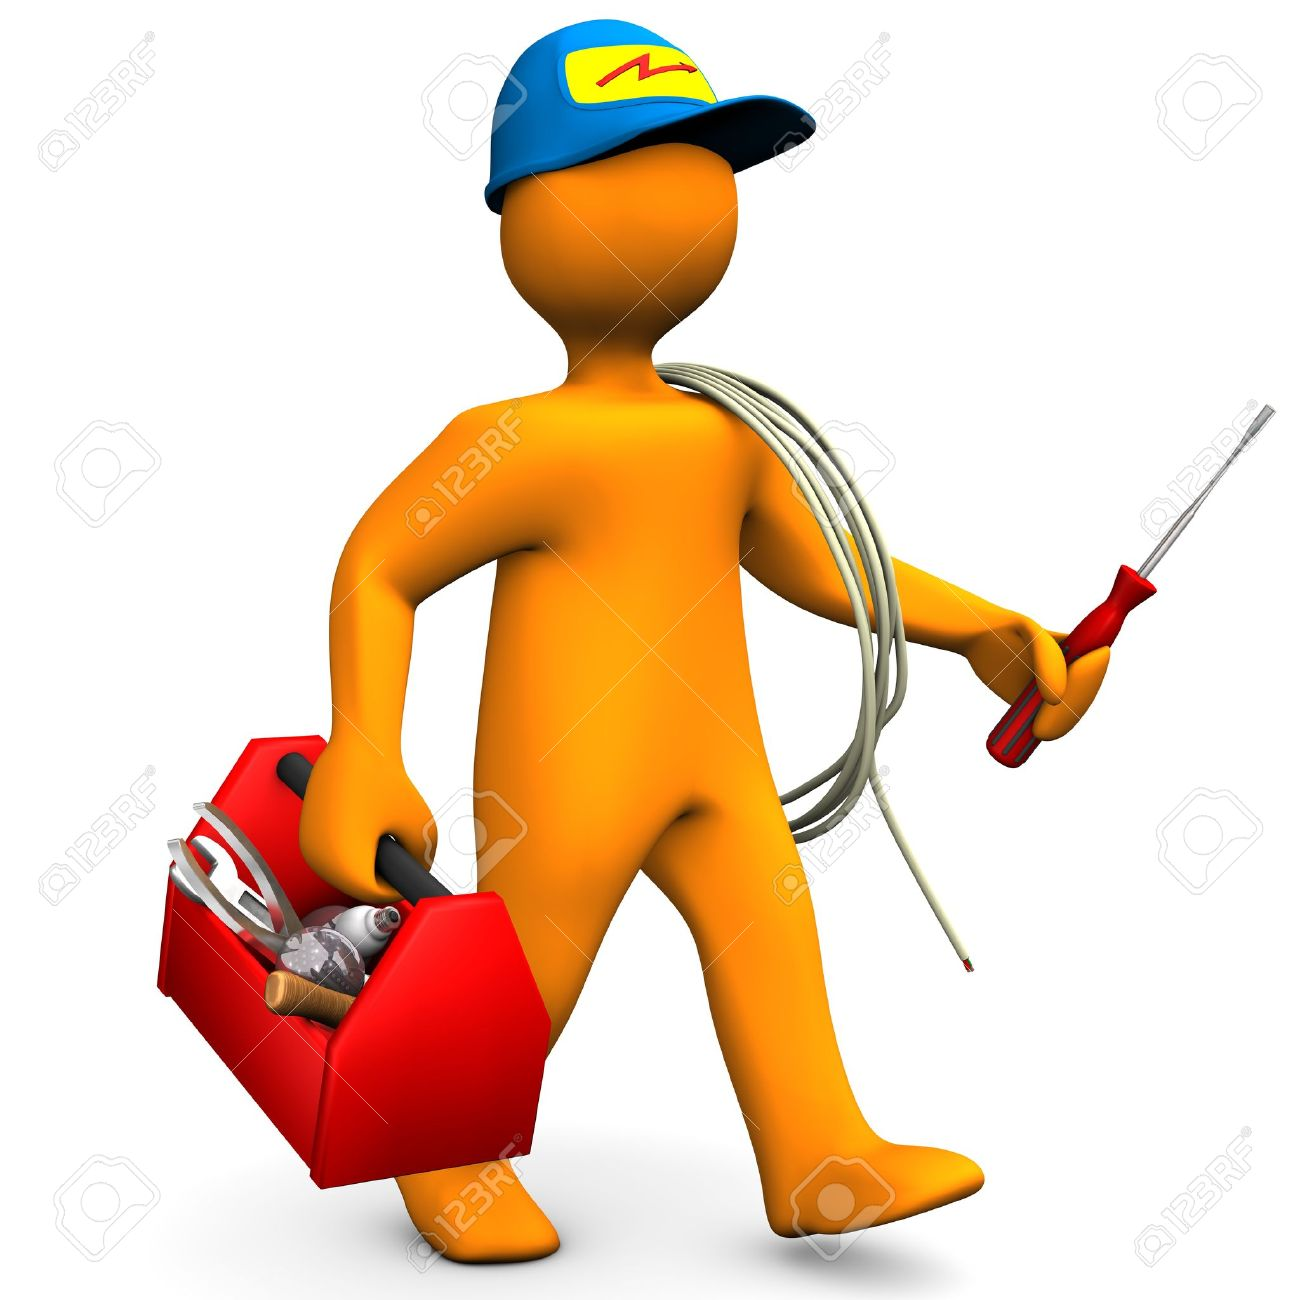 orange cartoon character as electrician with toolbox and cable